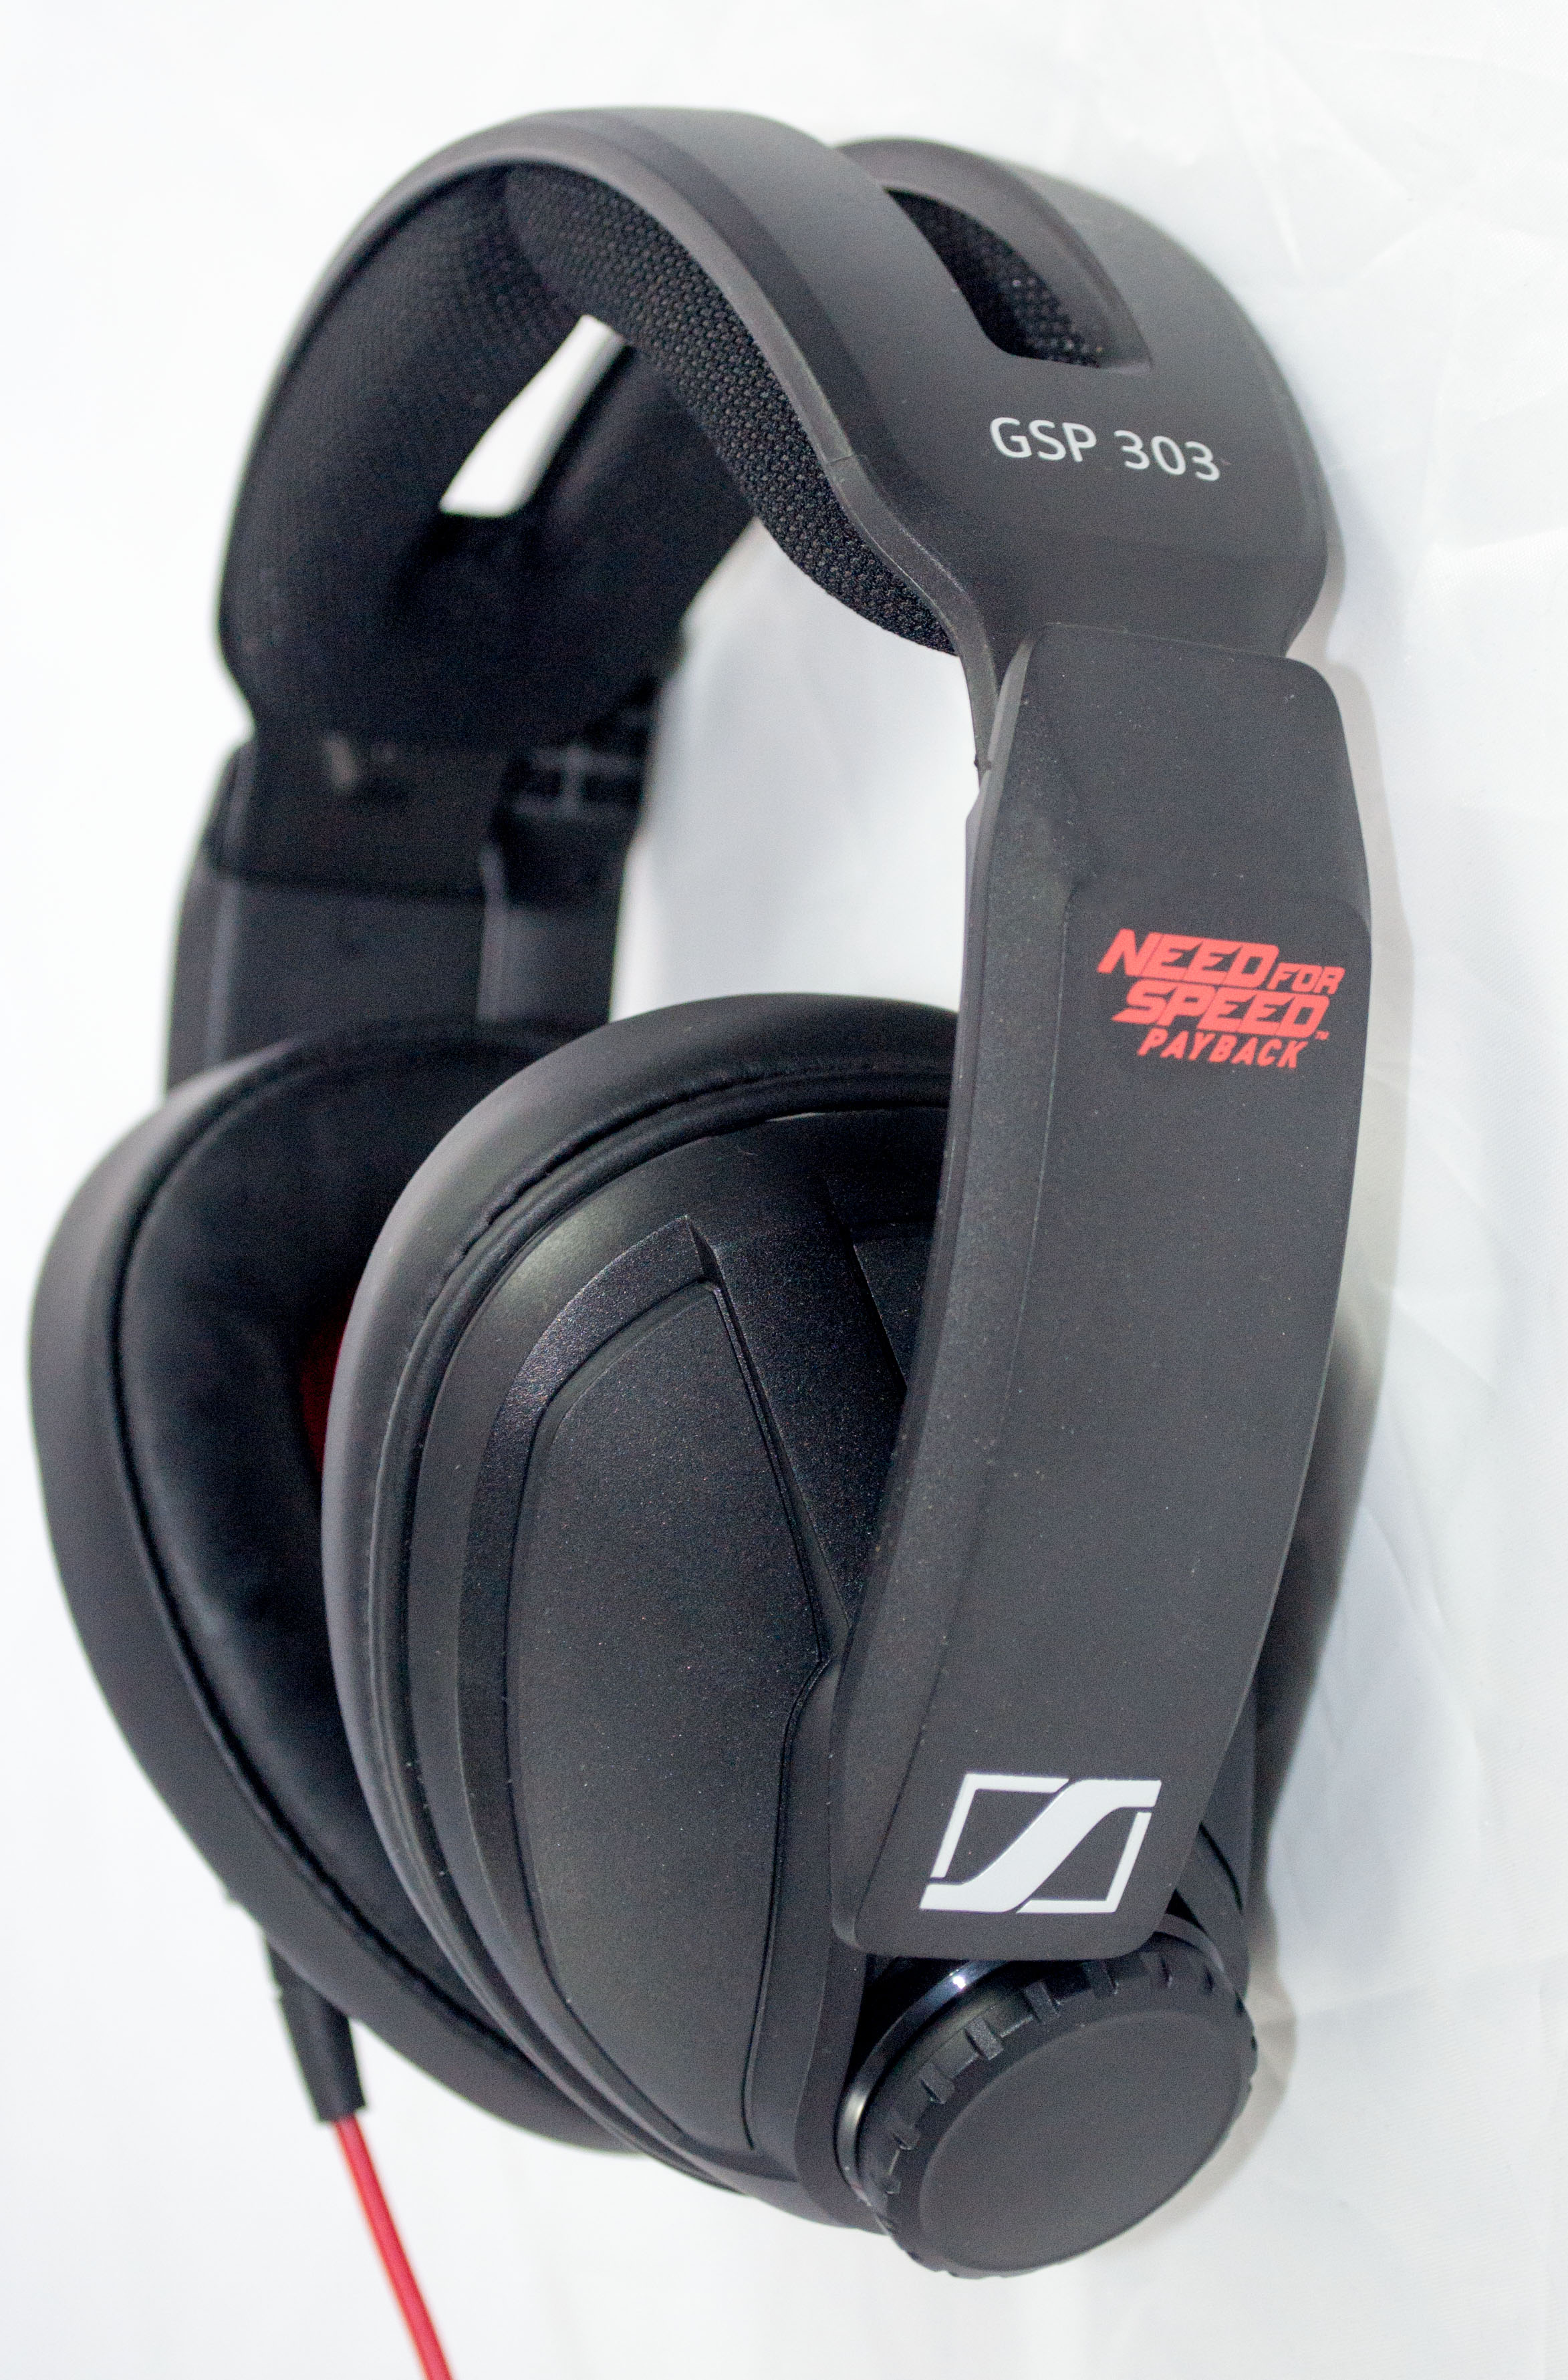 Sennheiser GSP 303 NFSP Ear Cup Outside With Volume